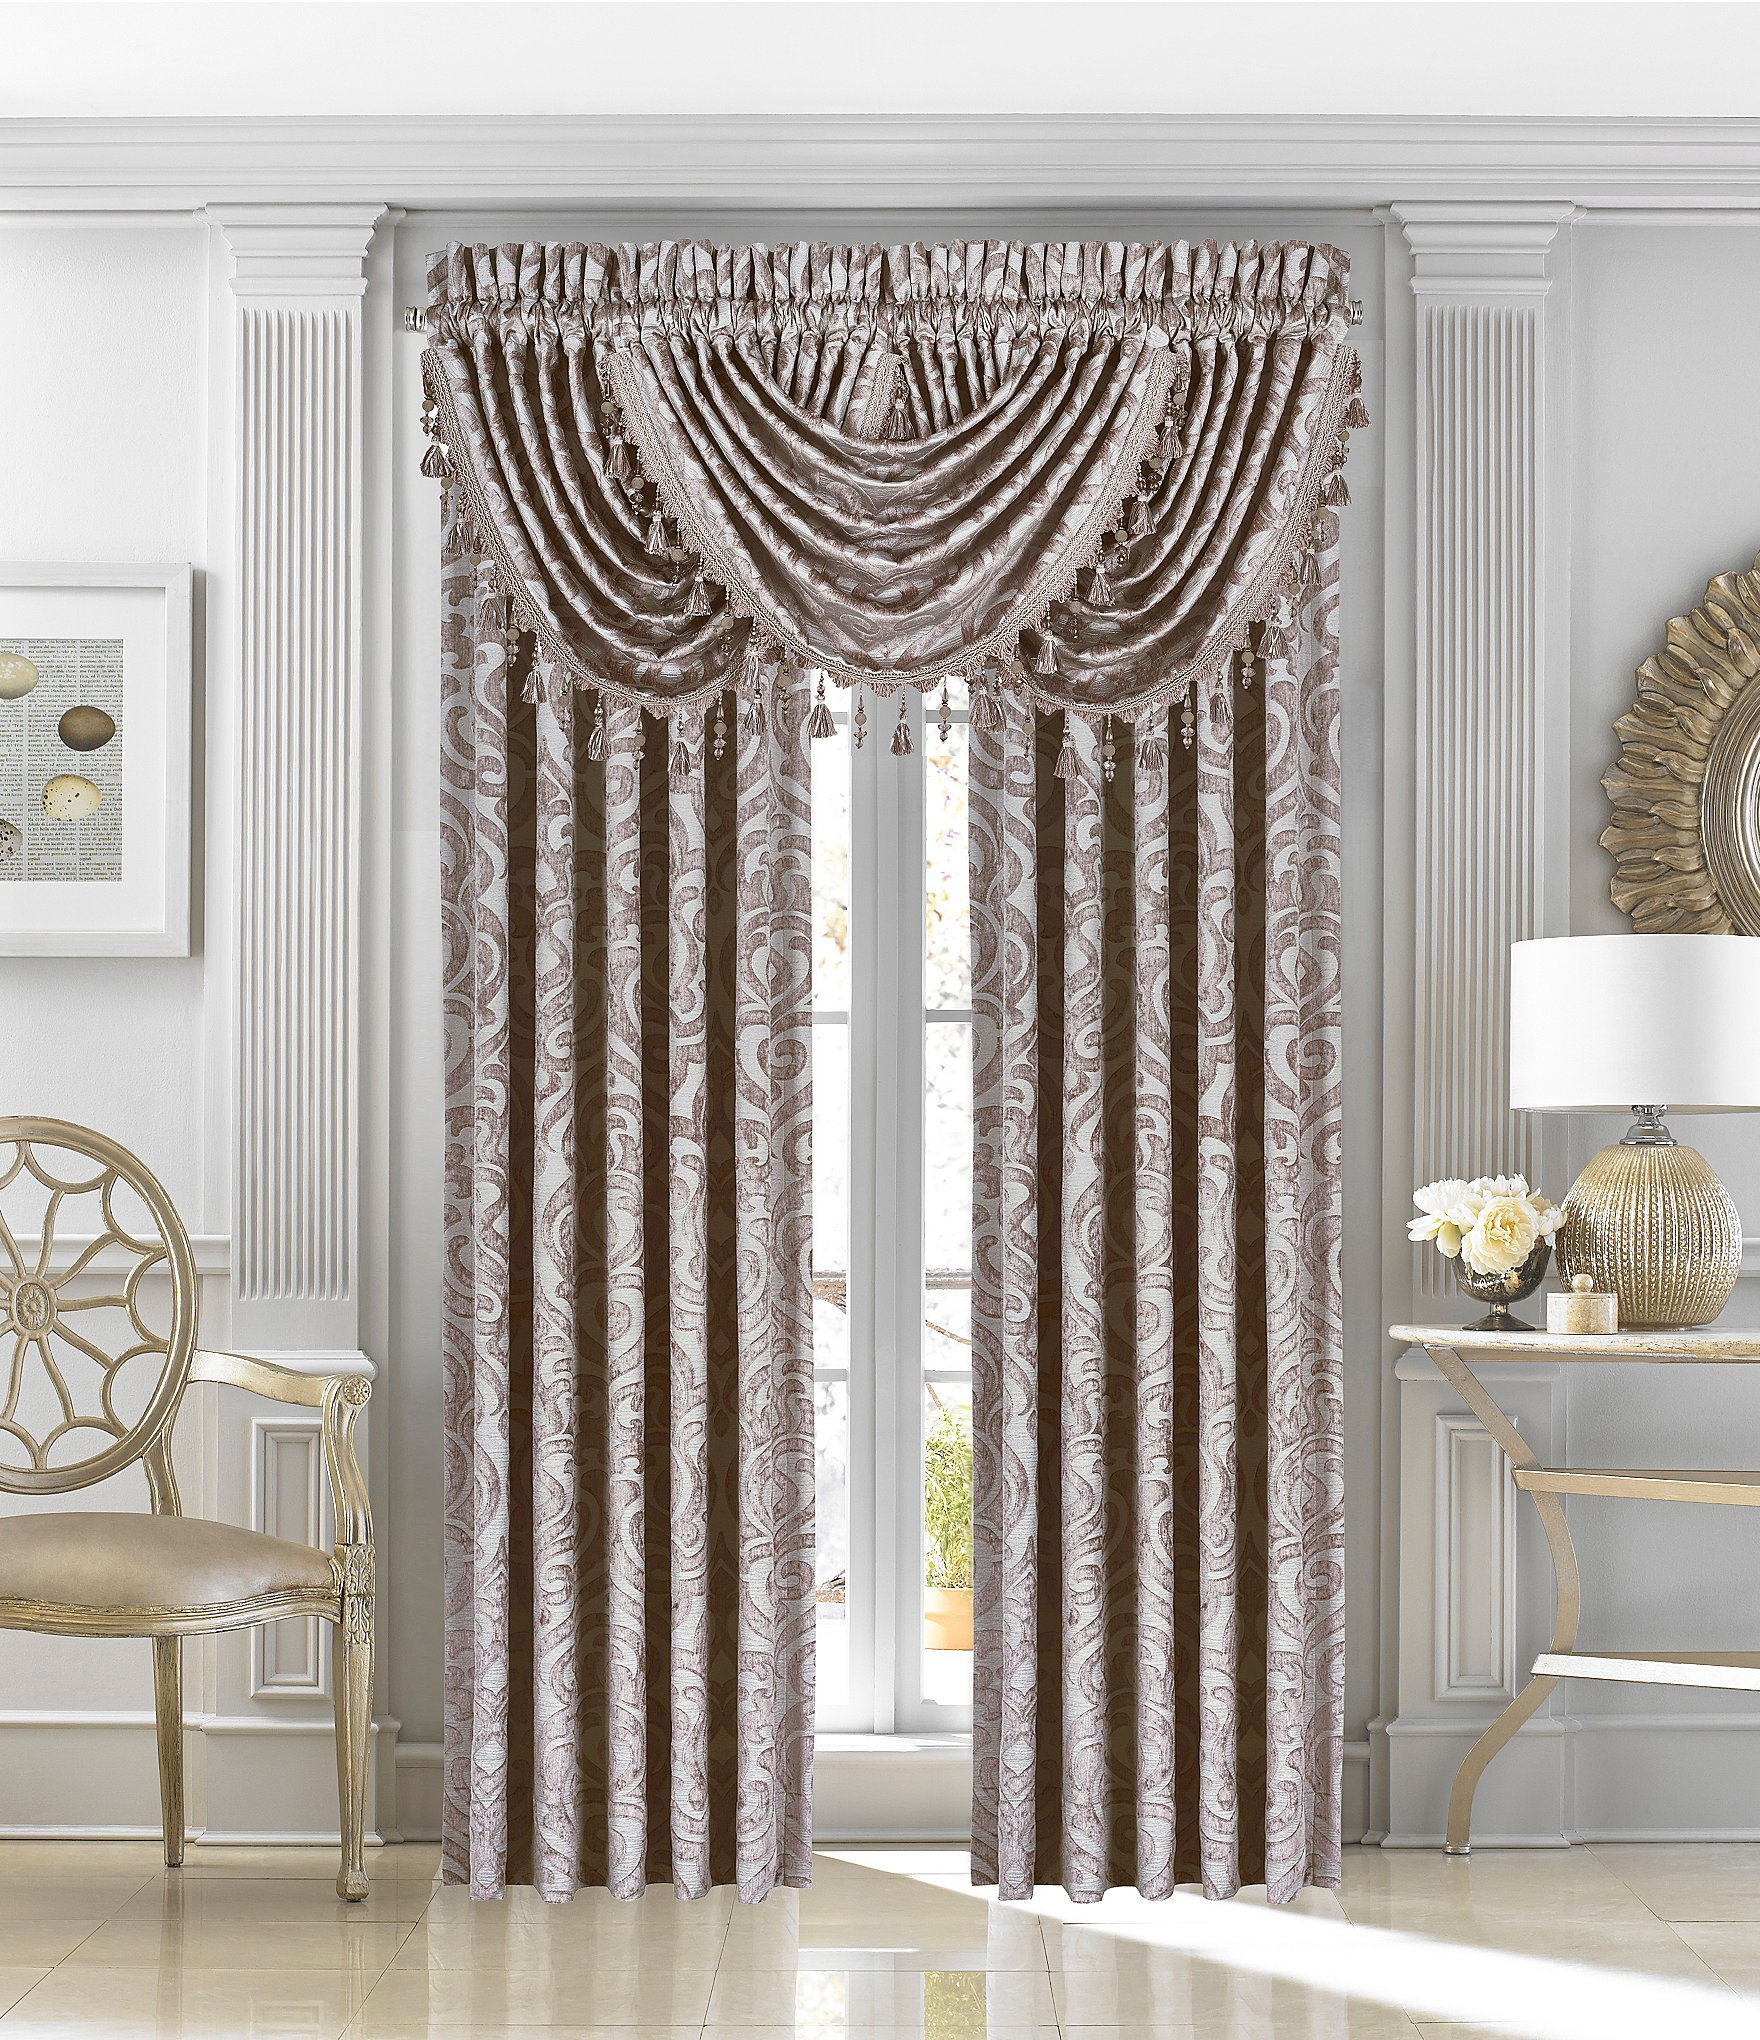 J queen new york sicily damask window treatments dillards for Curtains and drapes nyc